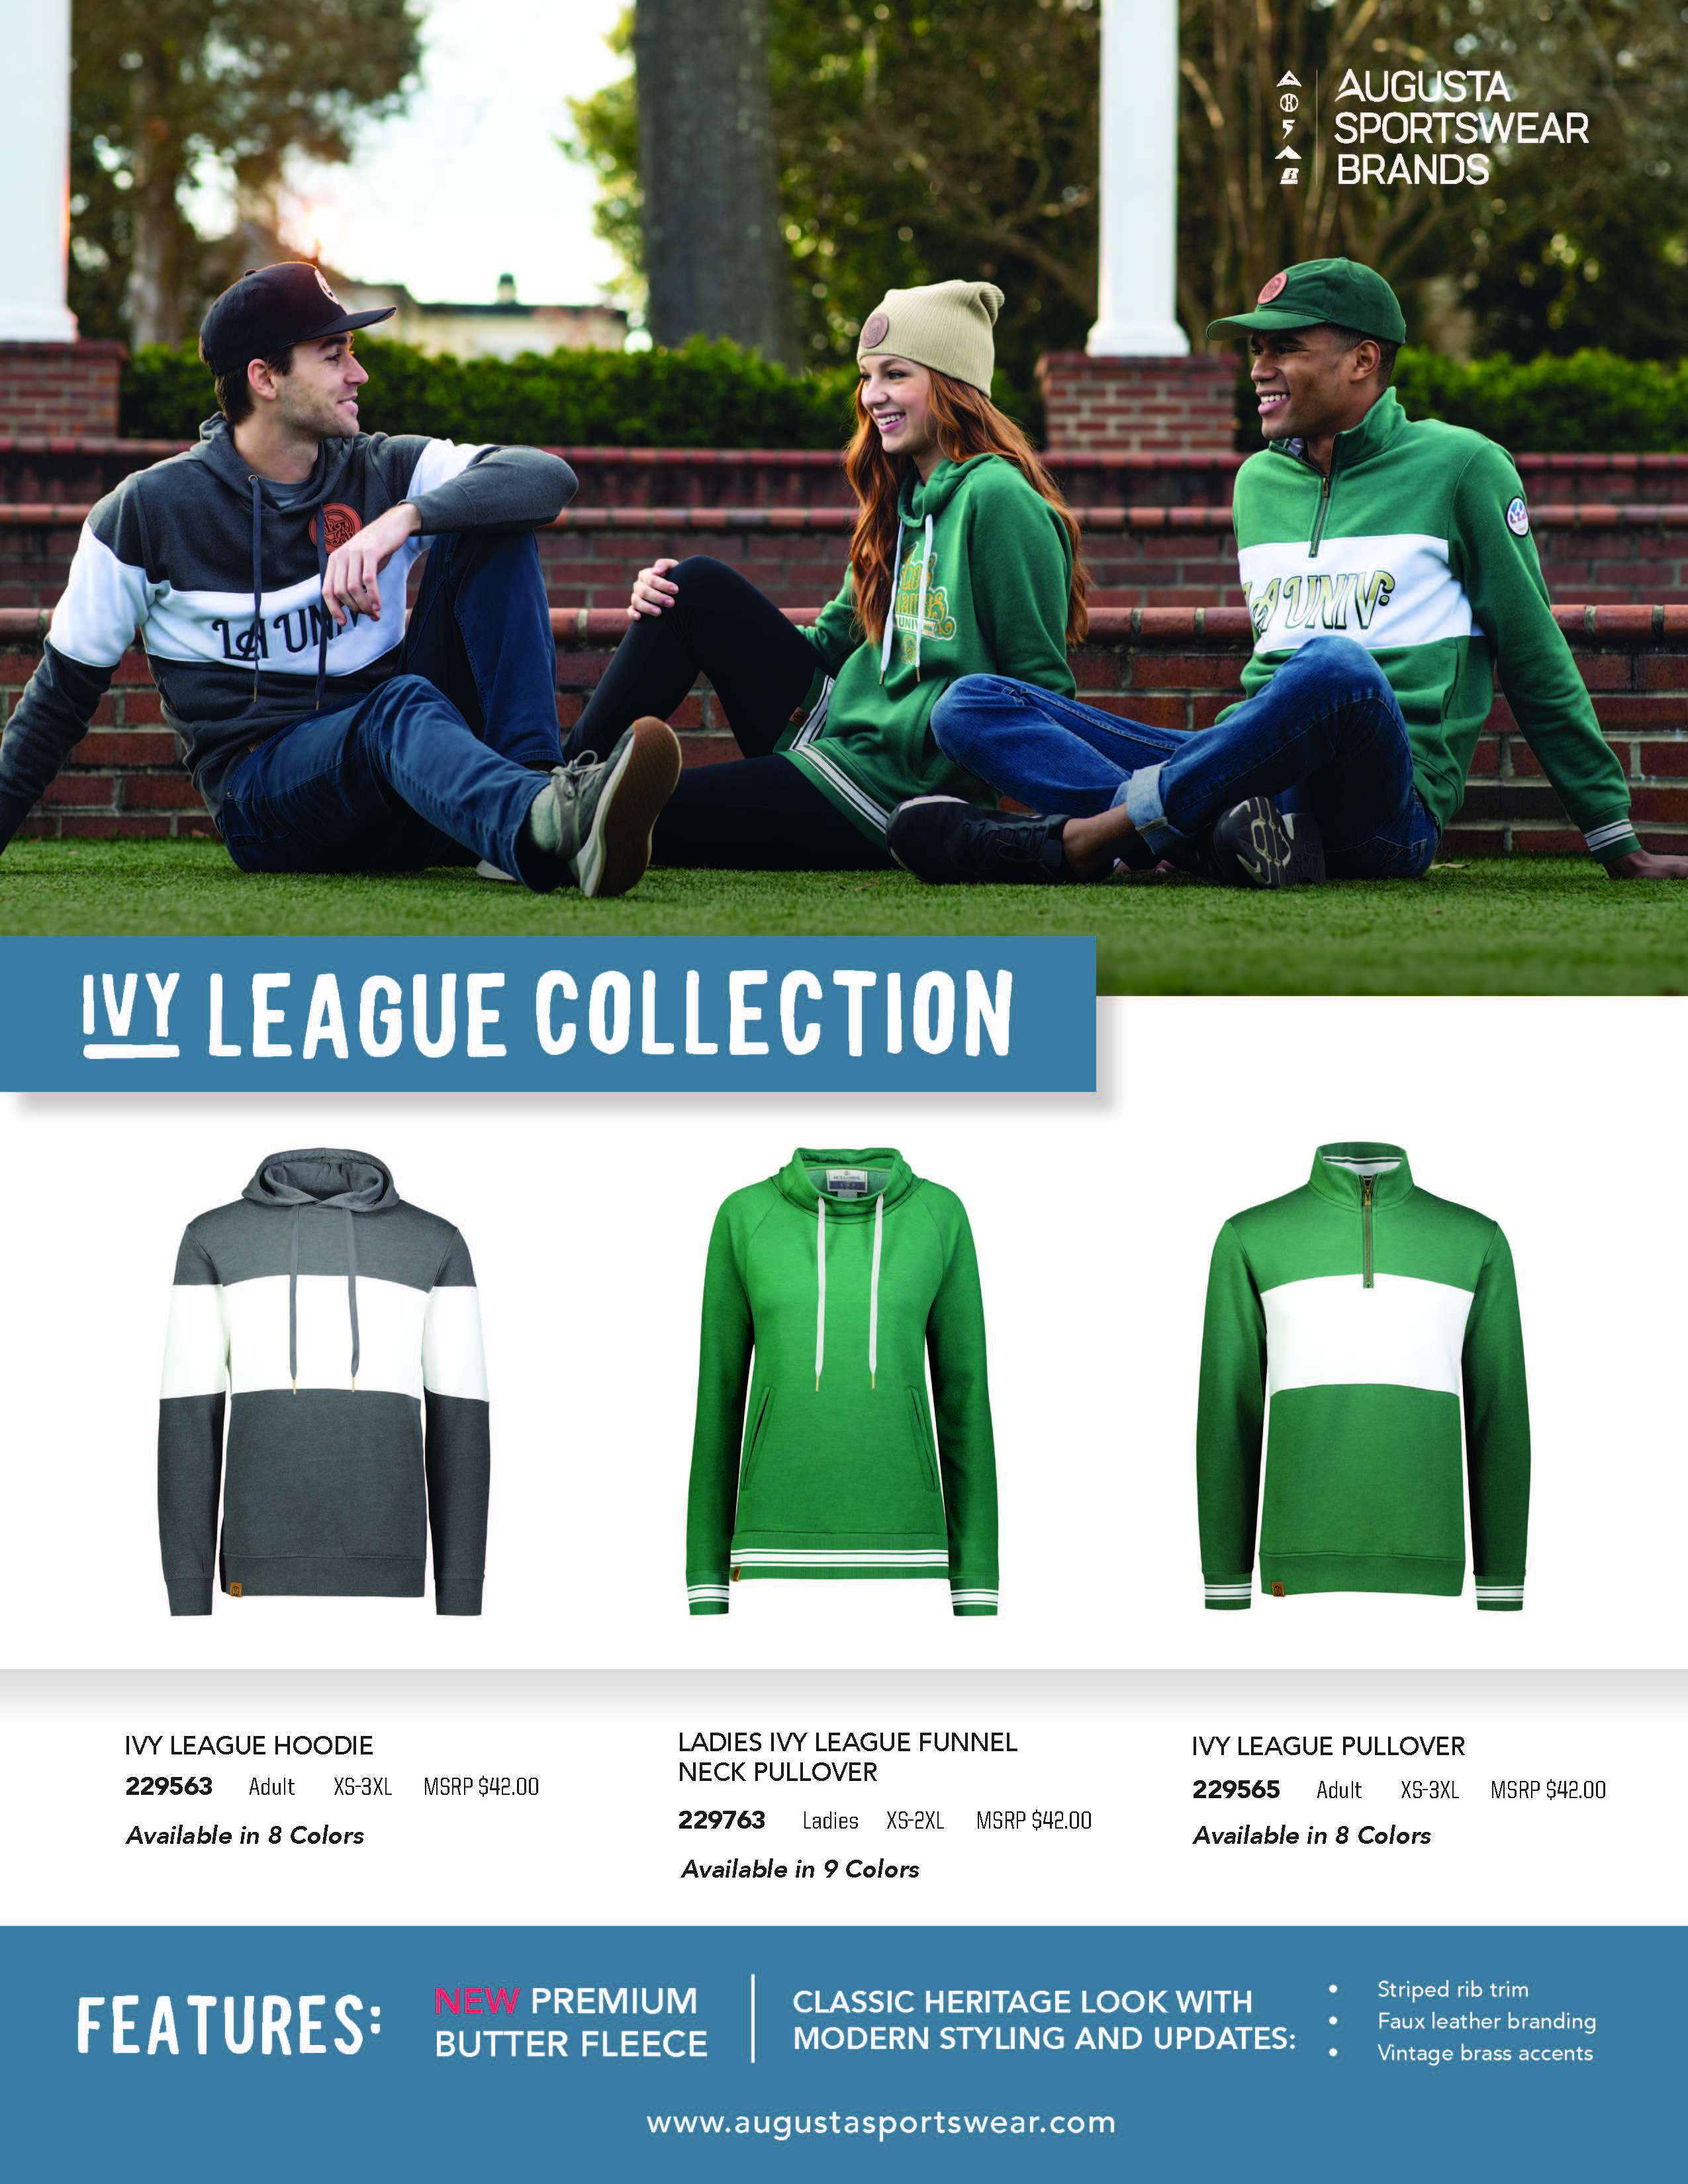 All new Ivy League Collection